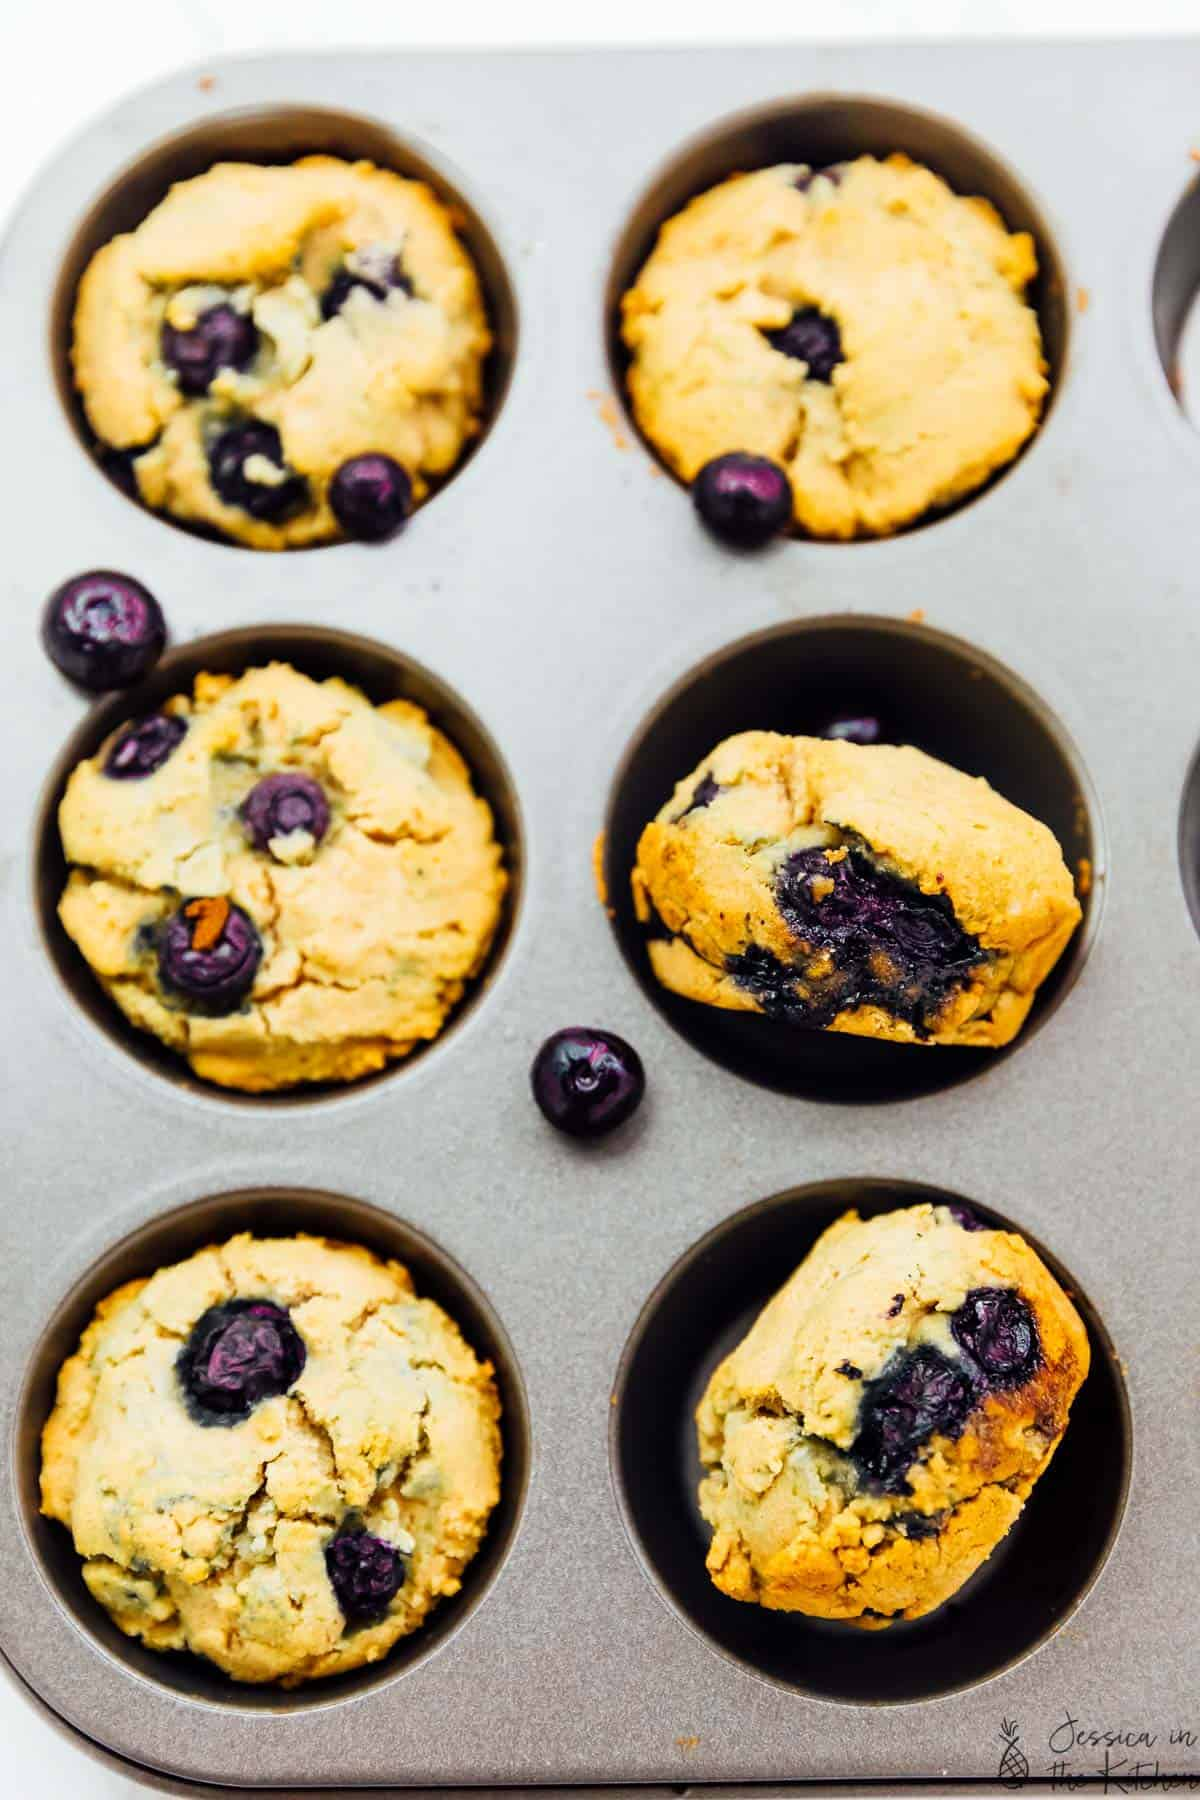 These Vegan Blueberry Muffins are fluffy, bursting with blueberry flavour and are gluten free! They're made with cassava flour - read on for more tips on how to perfectly use this flour! via https://jessicainthekitchen.com